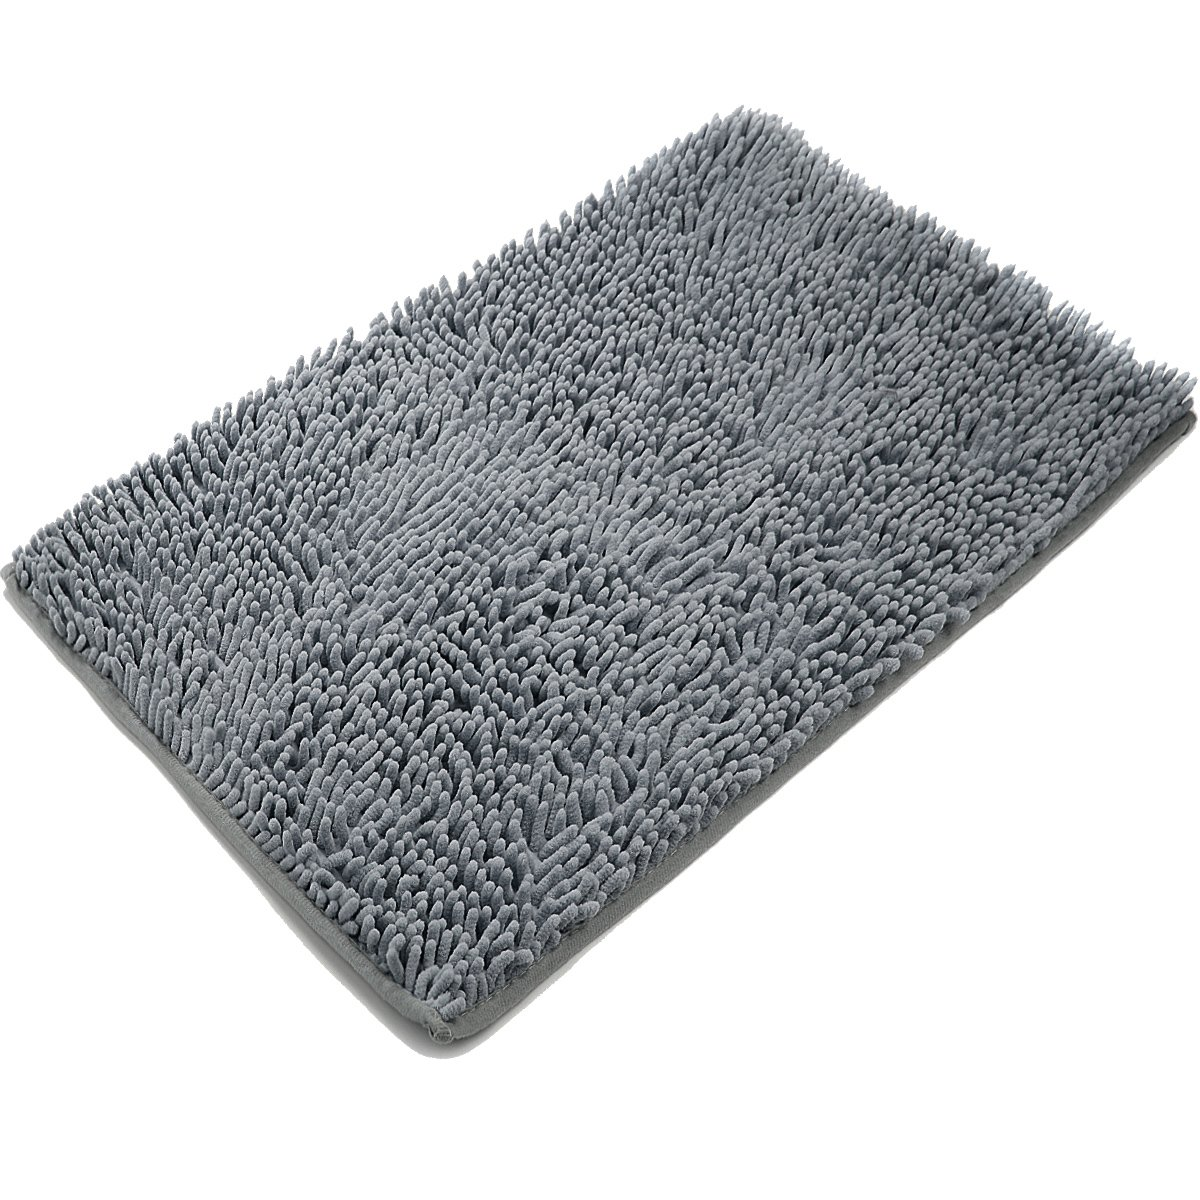 1-60 of 43,438 results for Home u0026 Kitchen : Bath : Bath Rugs